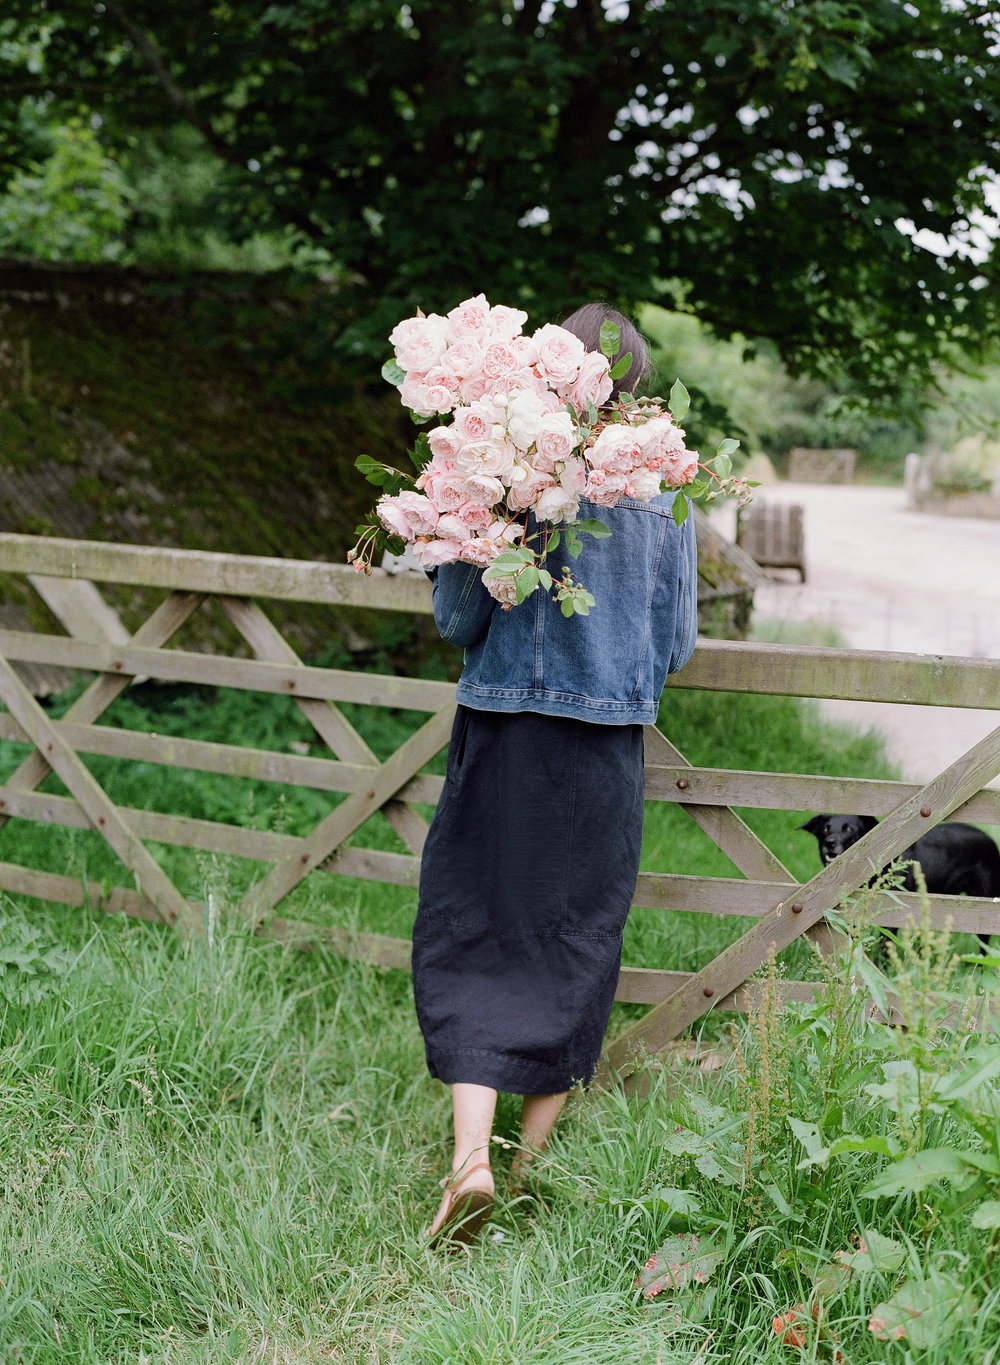 Cornish Florist Becca of The Garden Gate Flower Company